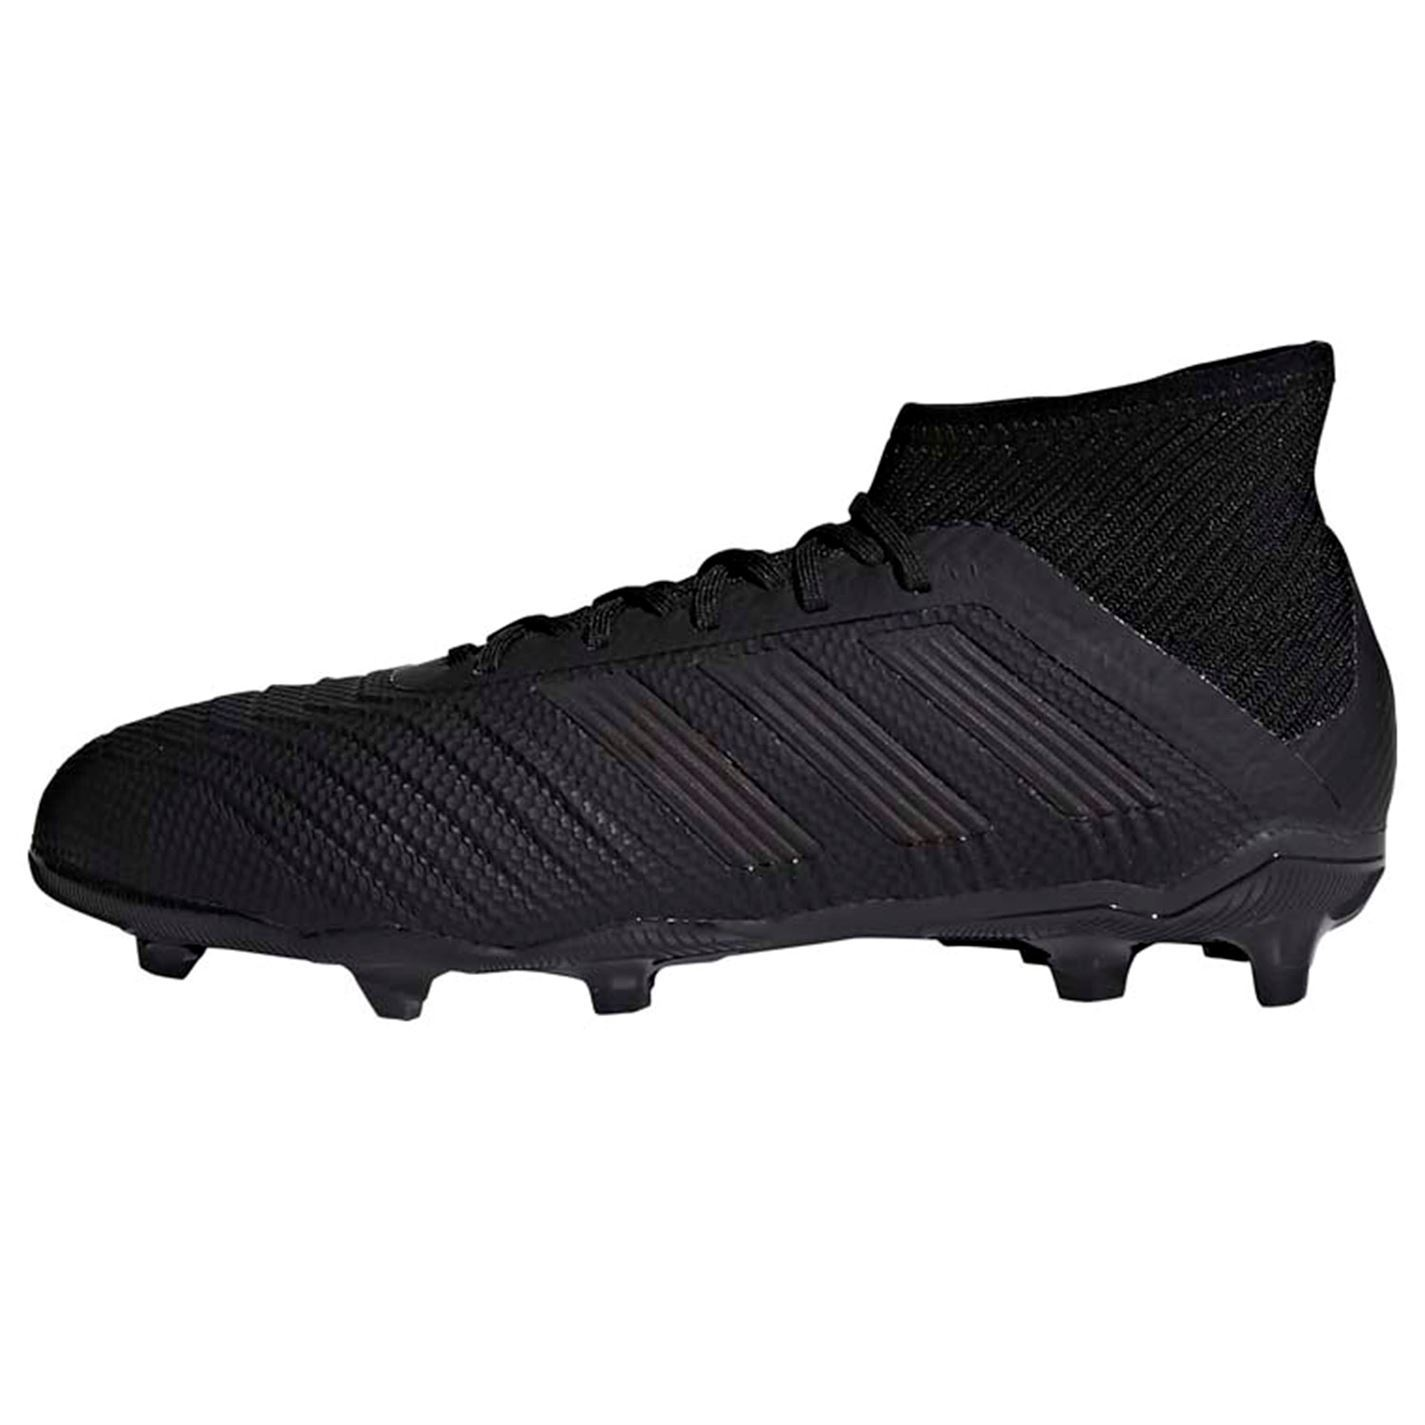 84f893f2e098 ... adidas Predator 18.1 FG Firm Ground Football Boots Juniors Black Soccer  Cleats ...